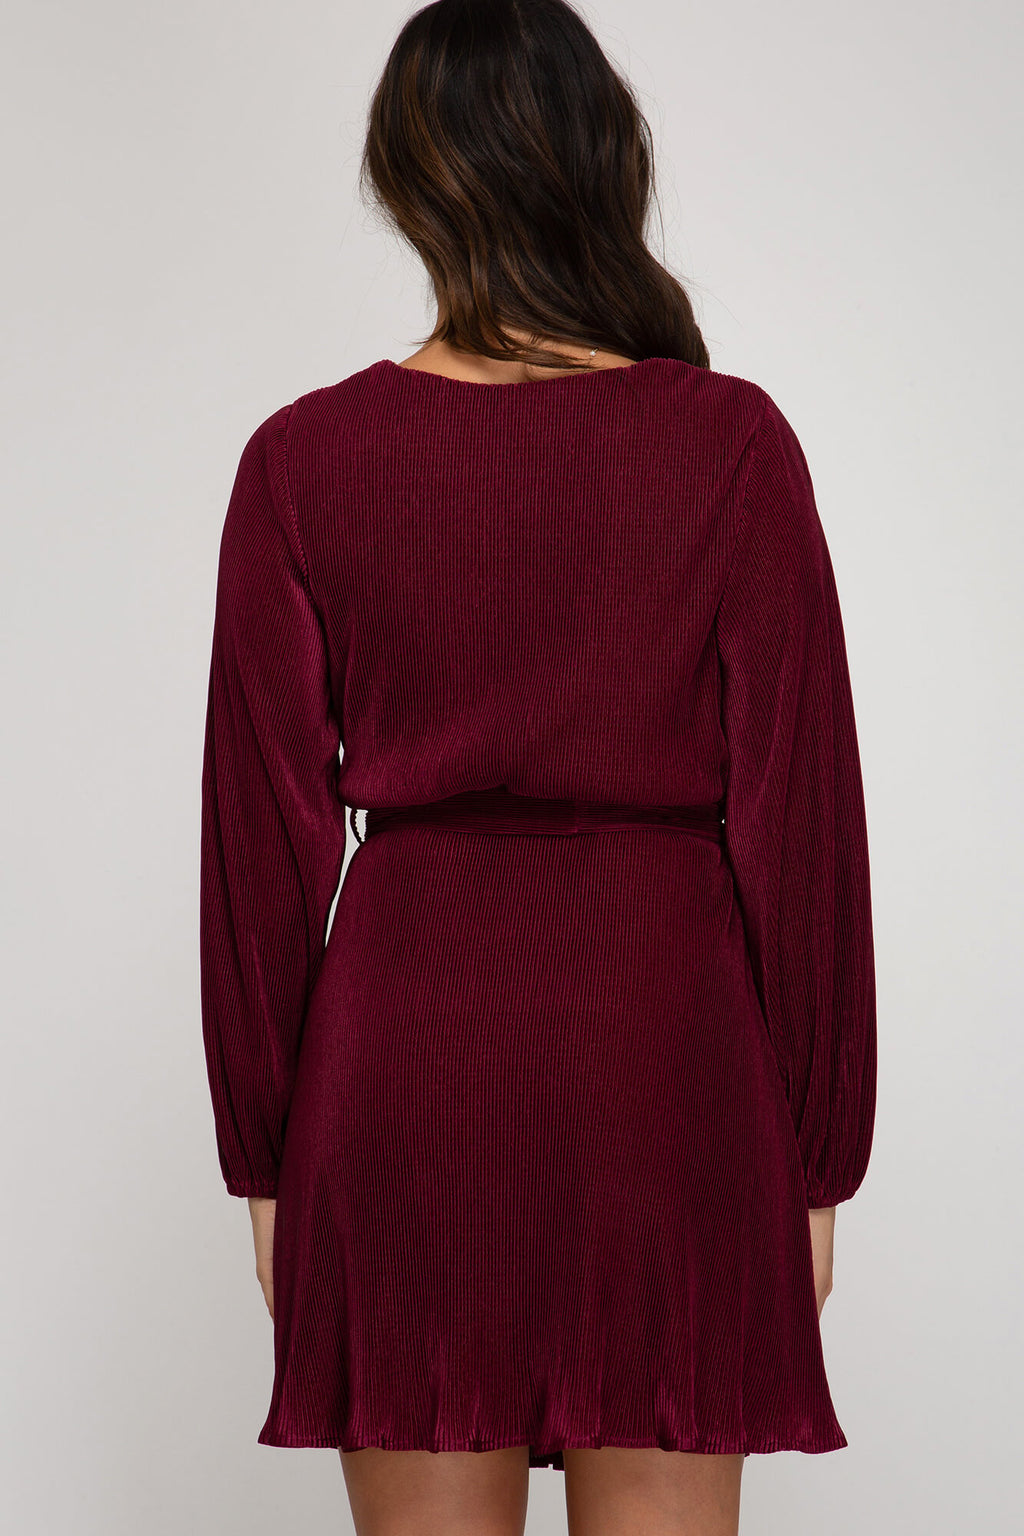 It's the Most Wine-derful Time of the Year Dress